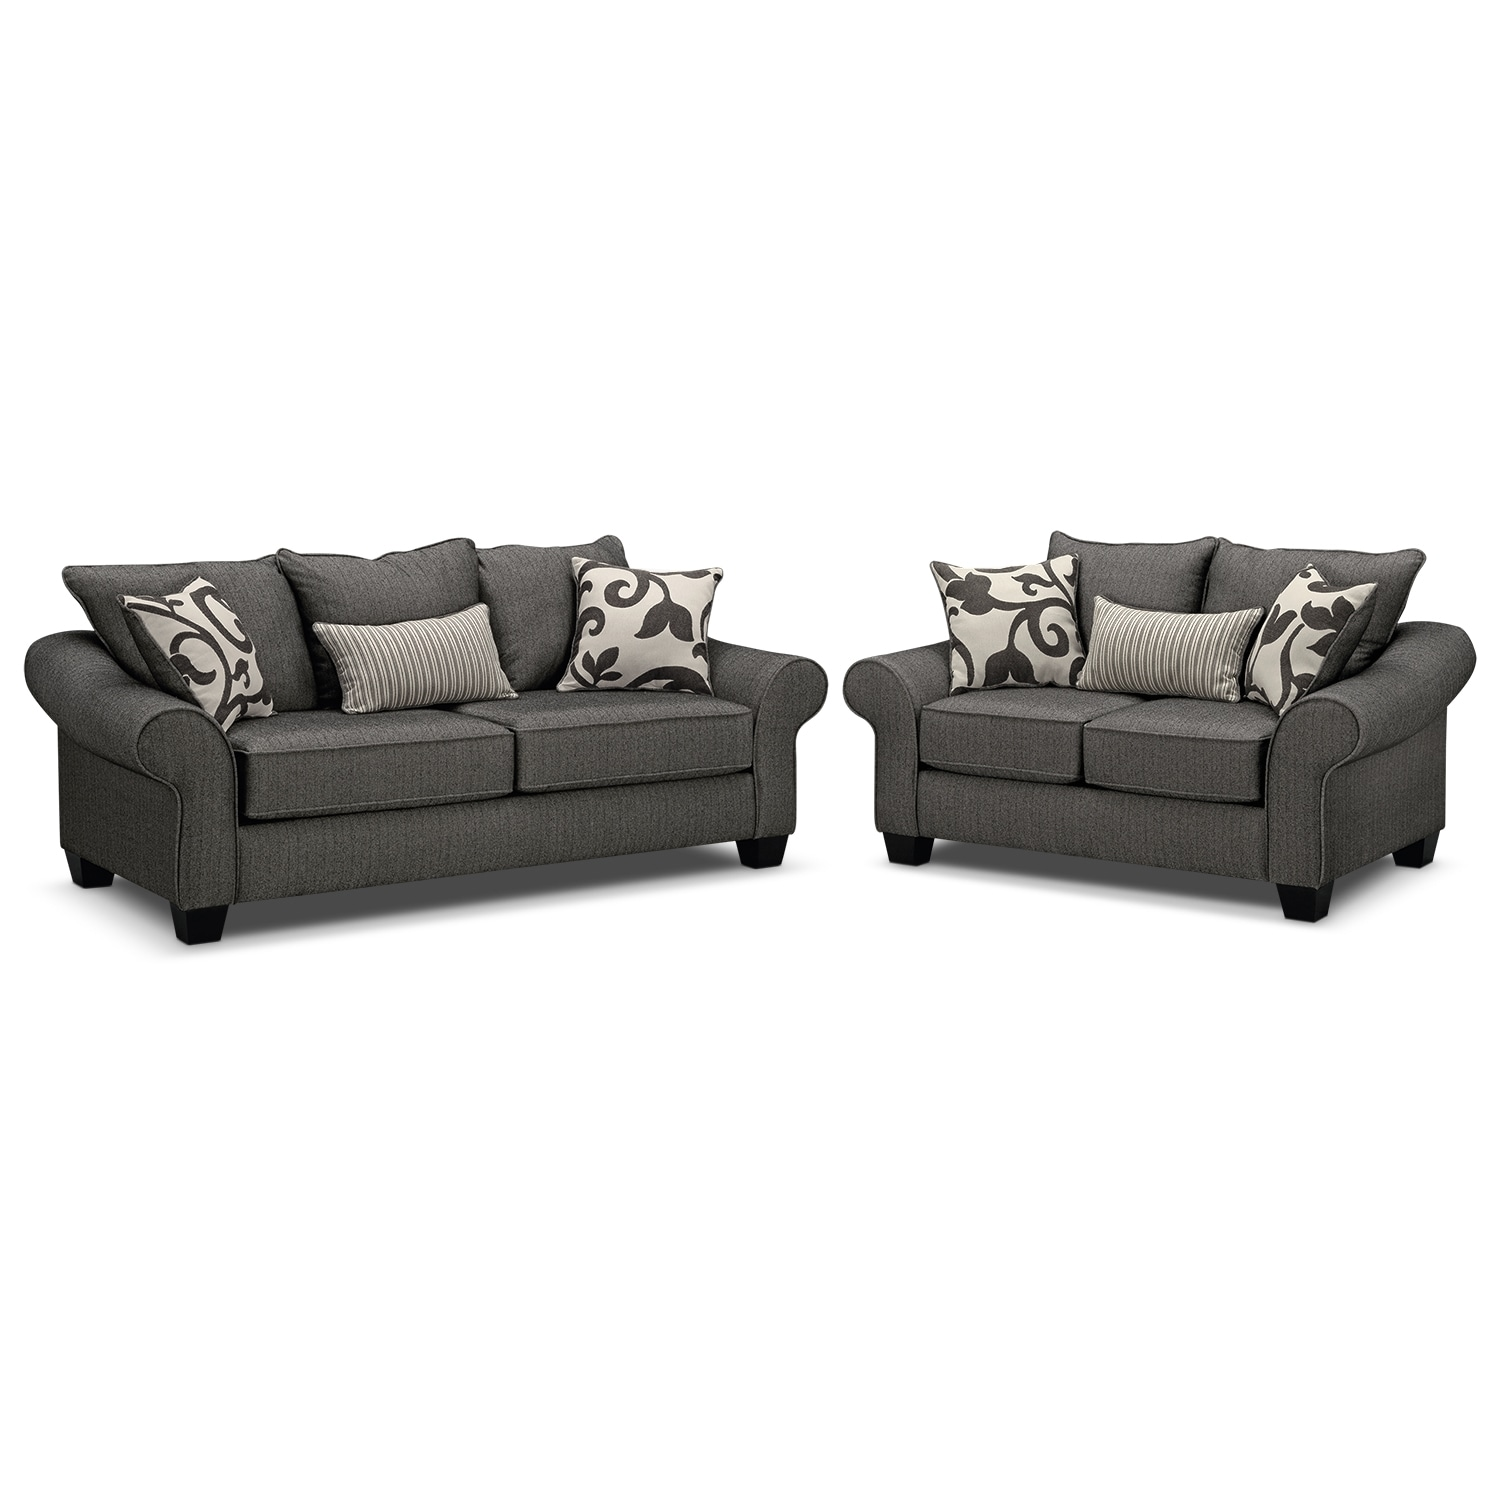 American Signature Furniture Living Room: Colette Sofa And Loveseat Set - Gray